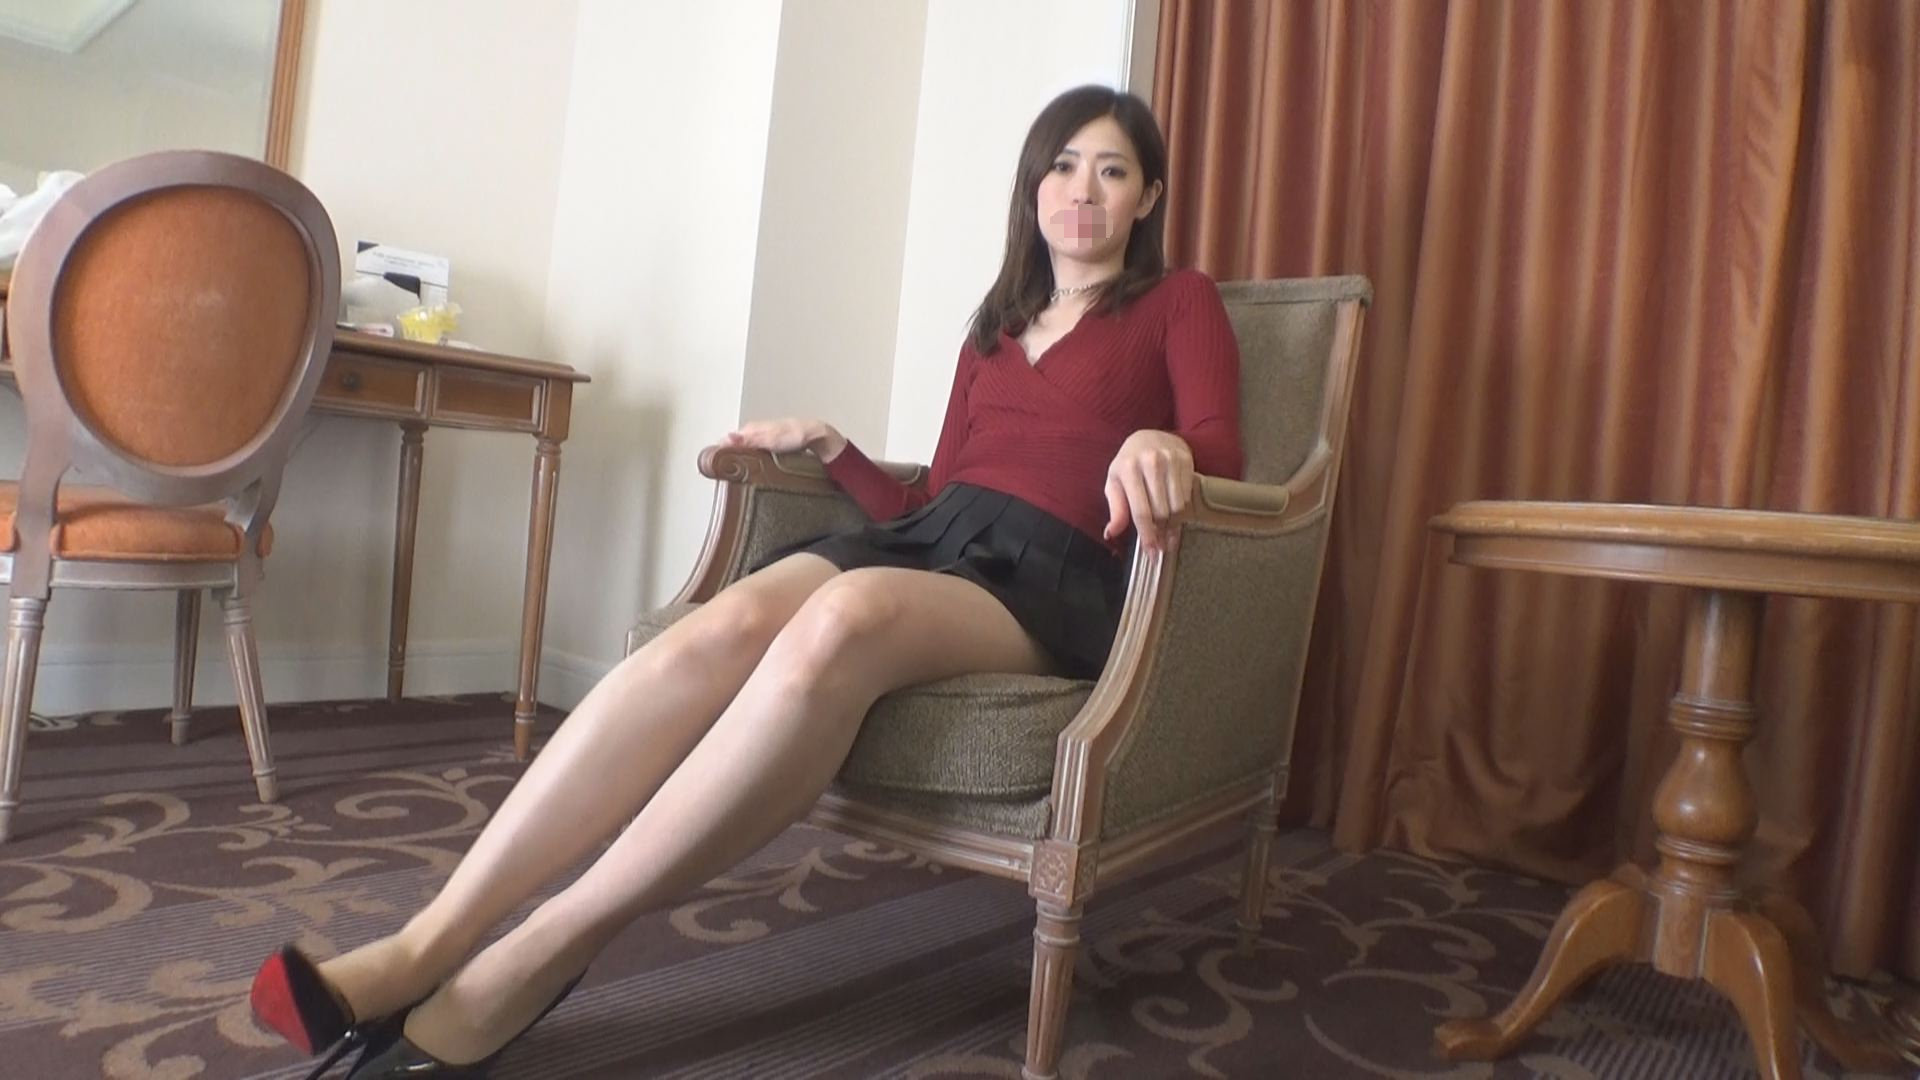 FC2-PPV 1539892 Release The Masturbation Of Side Dishes Without Permission The Super Beautiful Leg Model Is Finger Masturbation